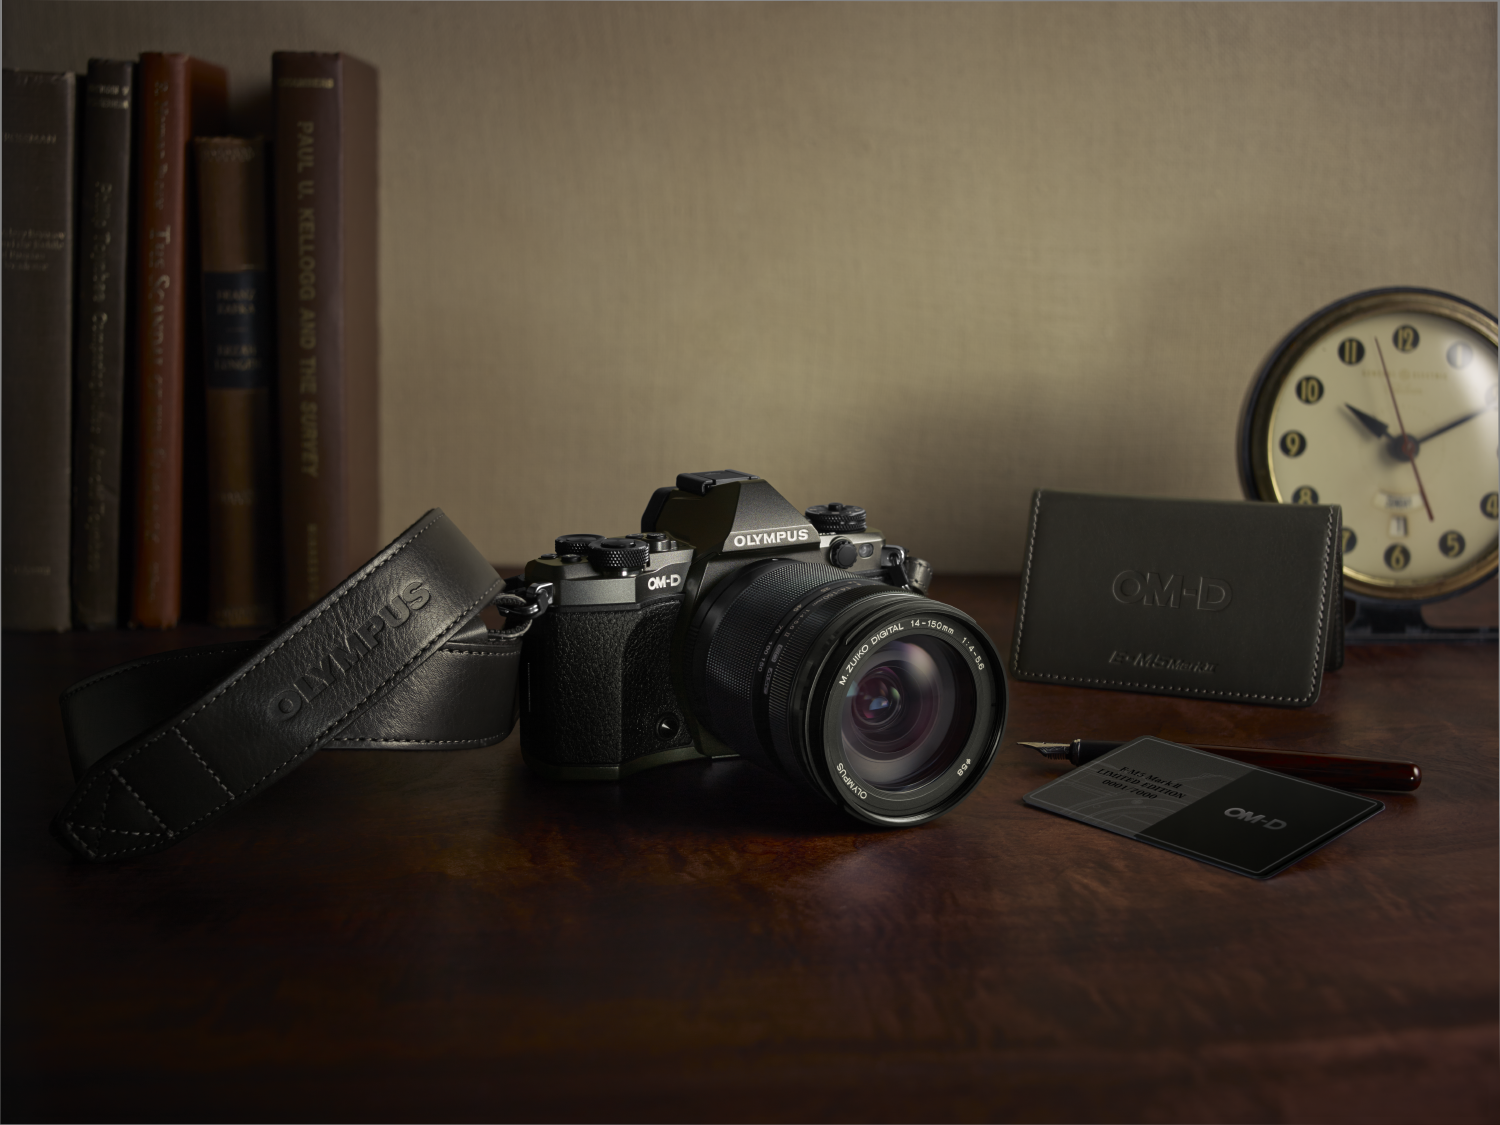 Om D Olympus E M5 Mark Ii Kit Ed 12 40mm F 28 Pro Mk2 Limited Edition Leather Strap Card